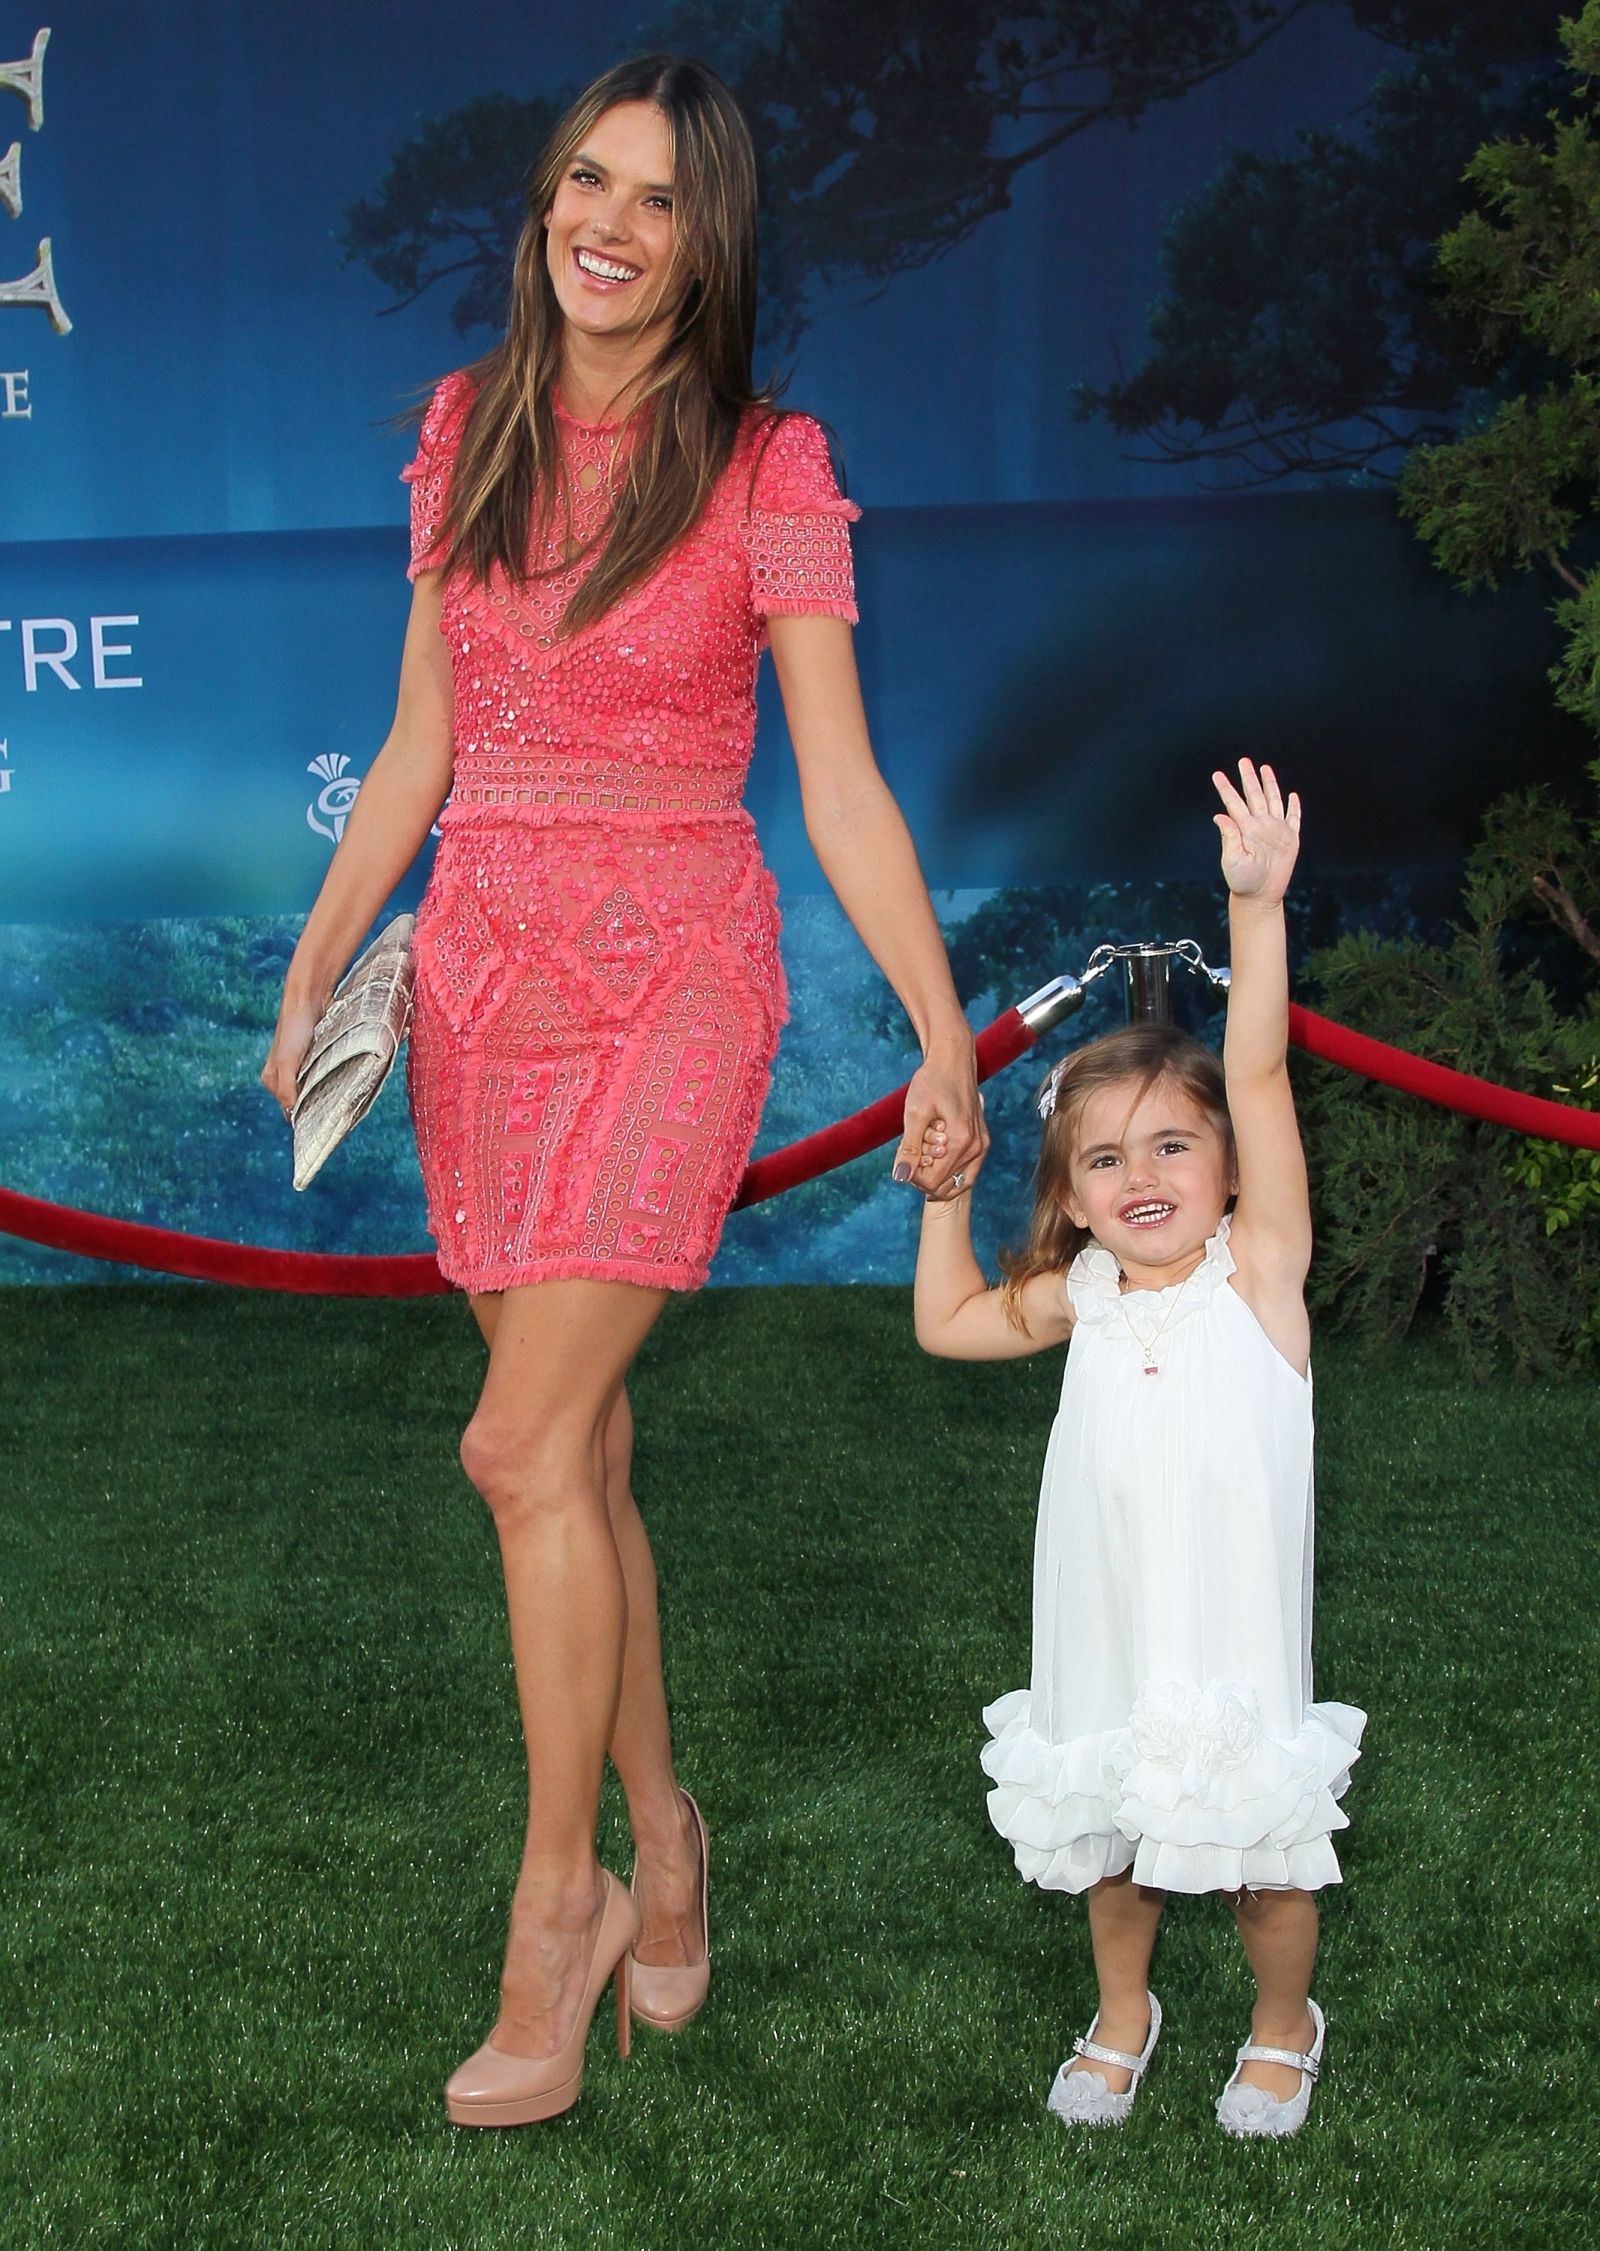 Alessandra Ambrosio and daughter